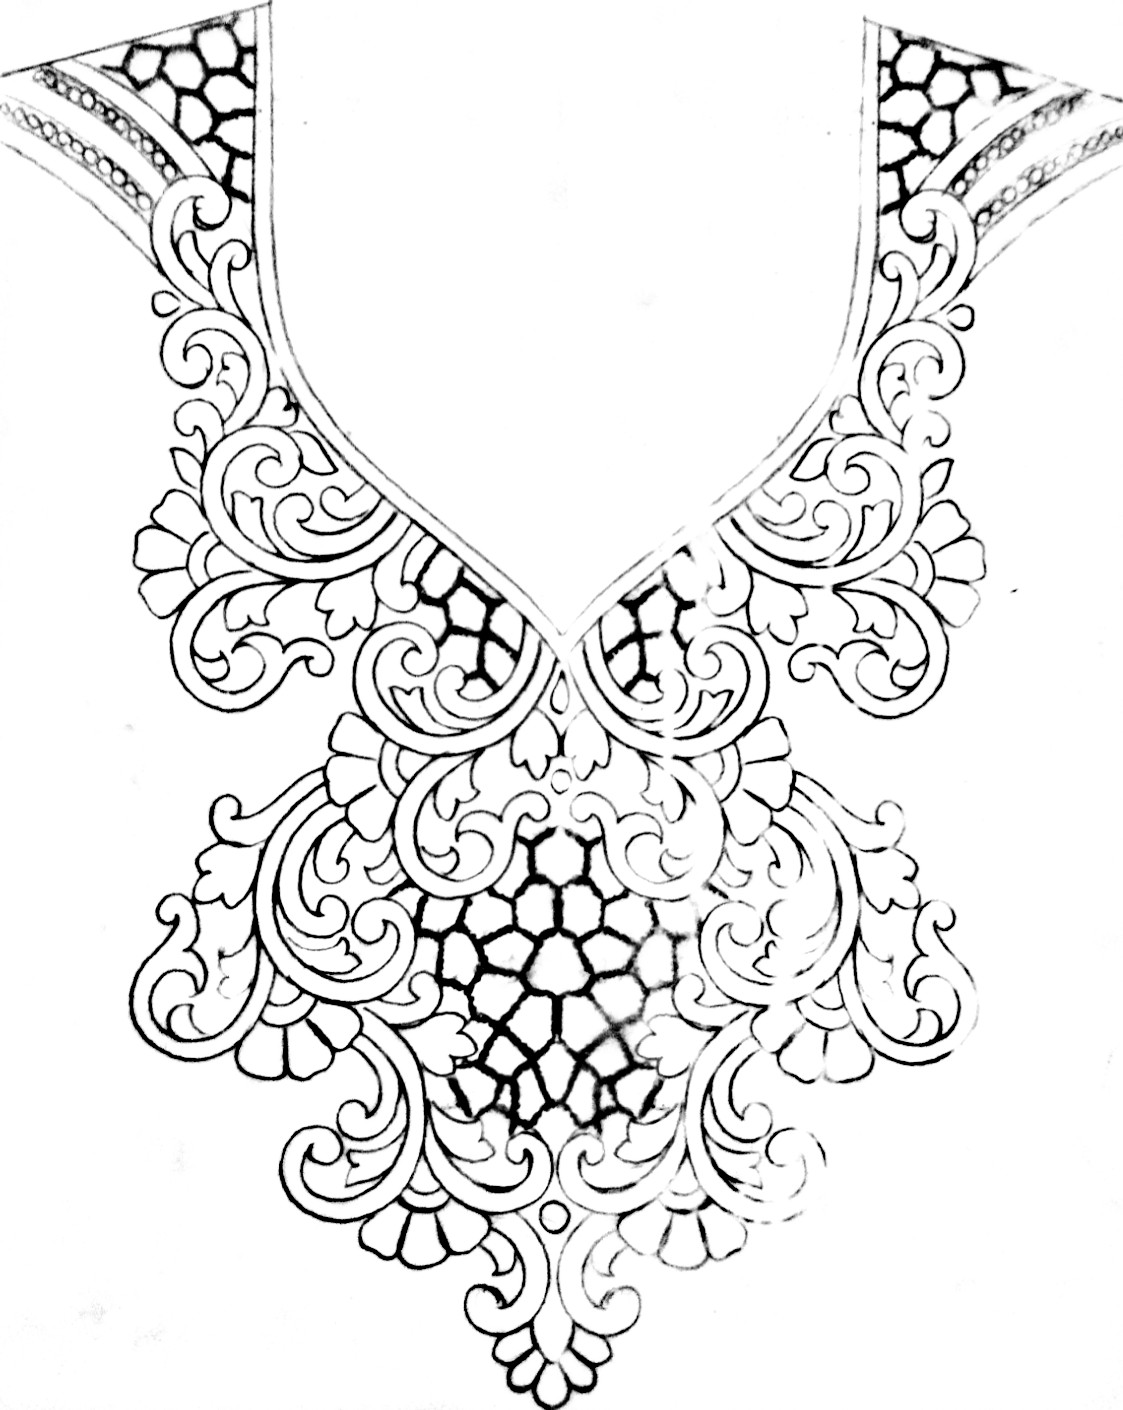 Drawing with pencil emroidery blouse neck design/new embrodiary design patterns sketch for Kurt neck